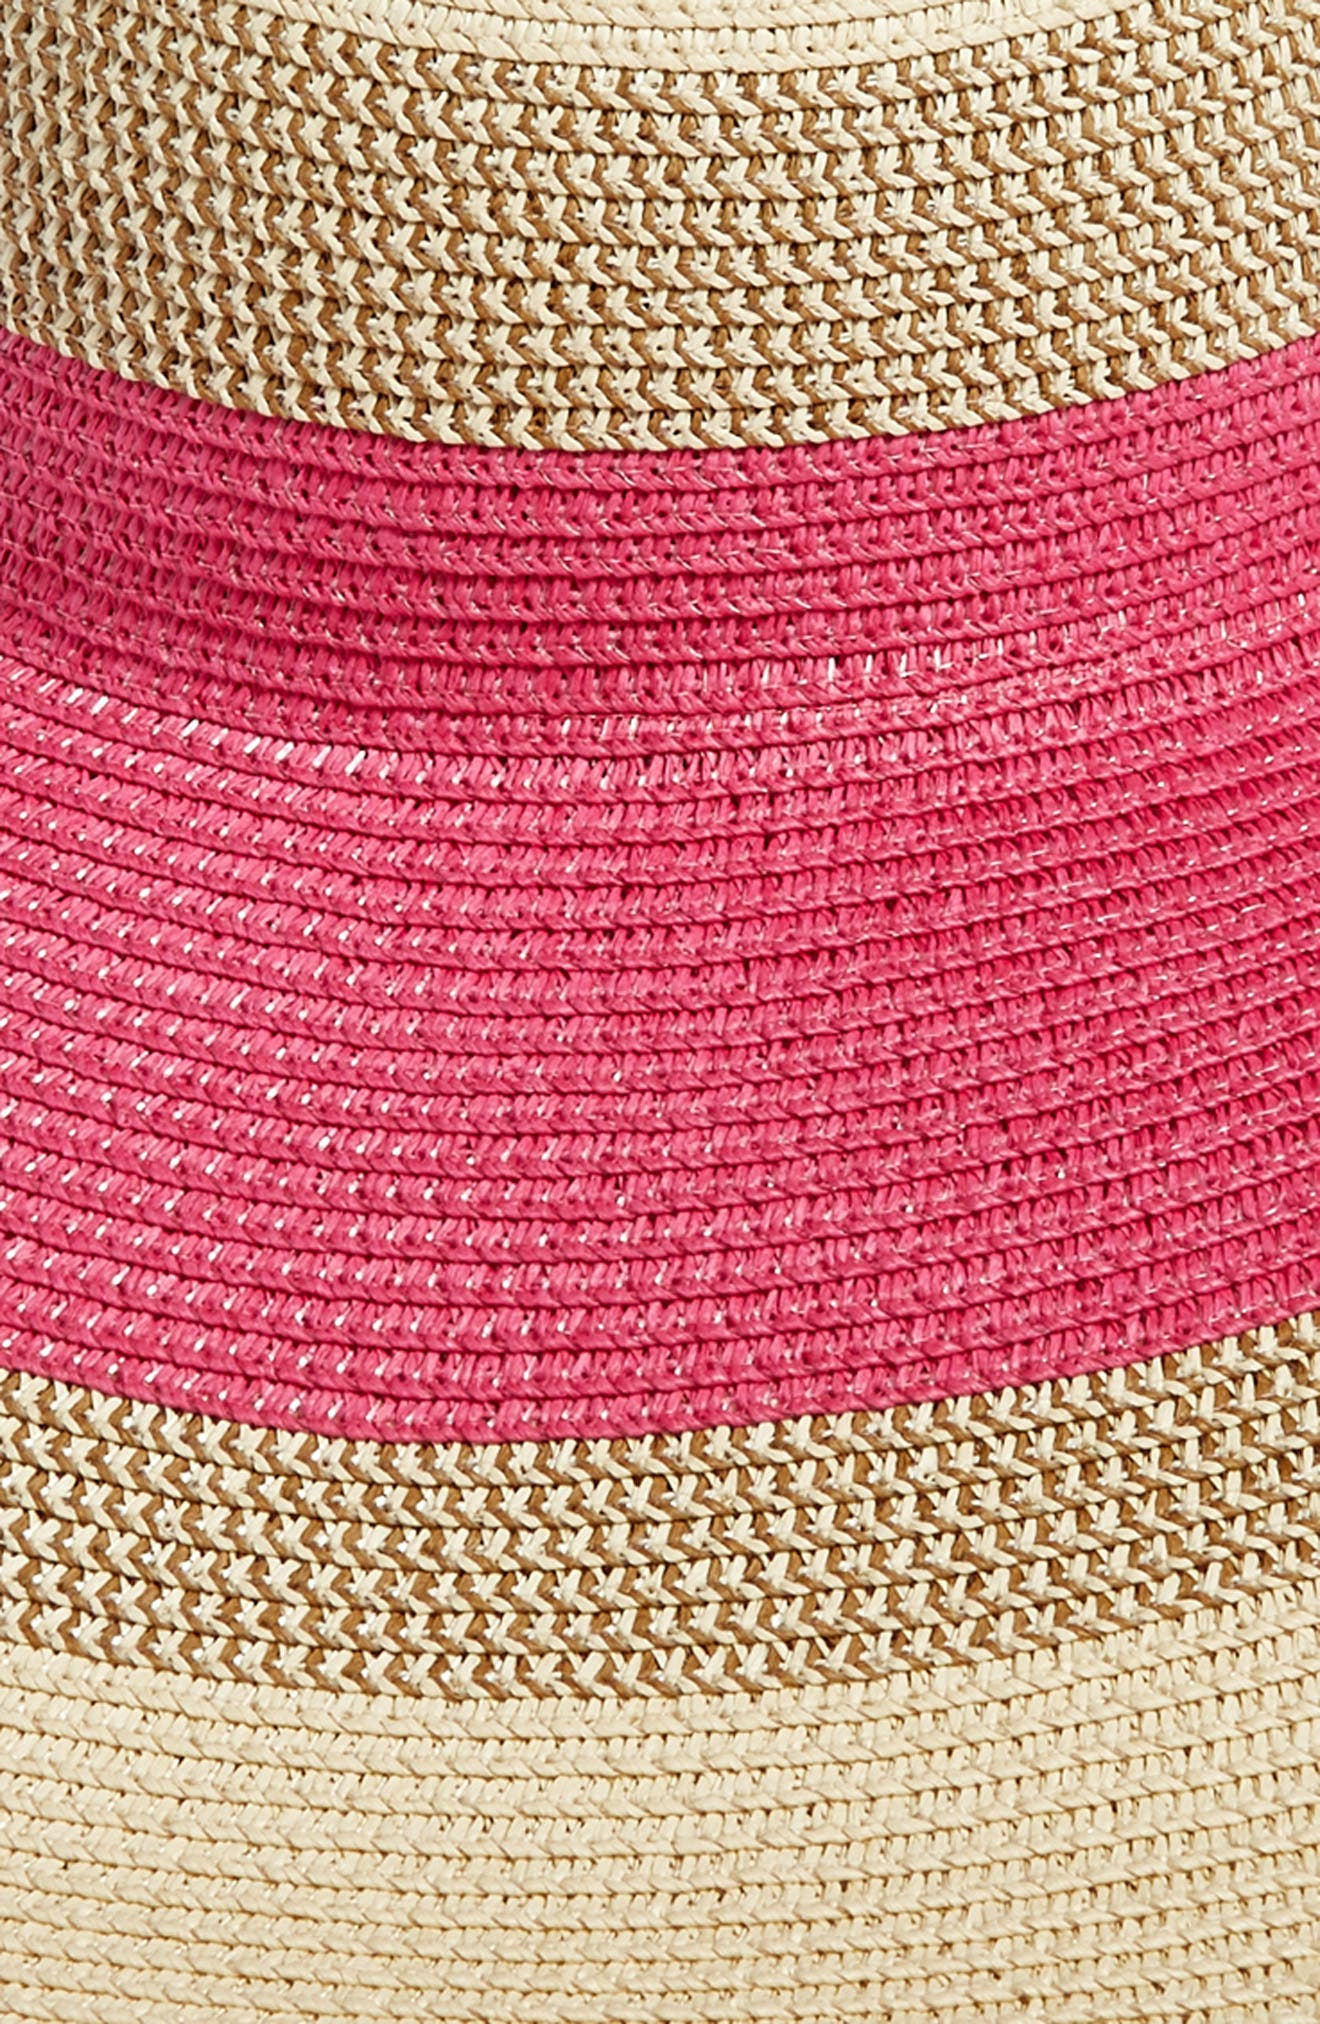 Statement Floppy Straw Hat,                             Alternate thumbnail 2, color,                             Pink Combo